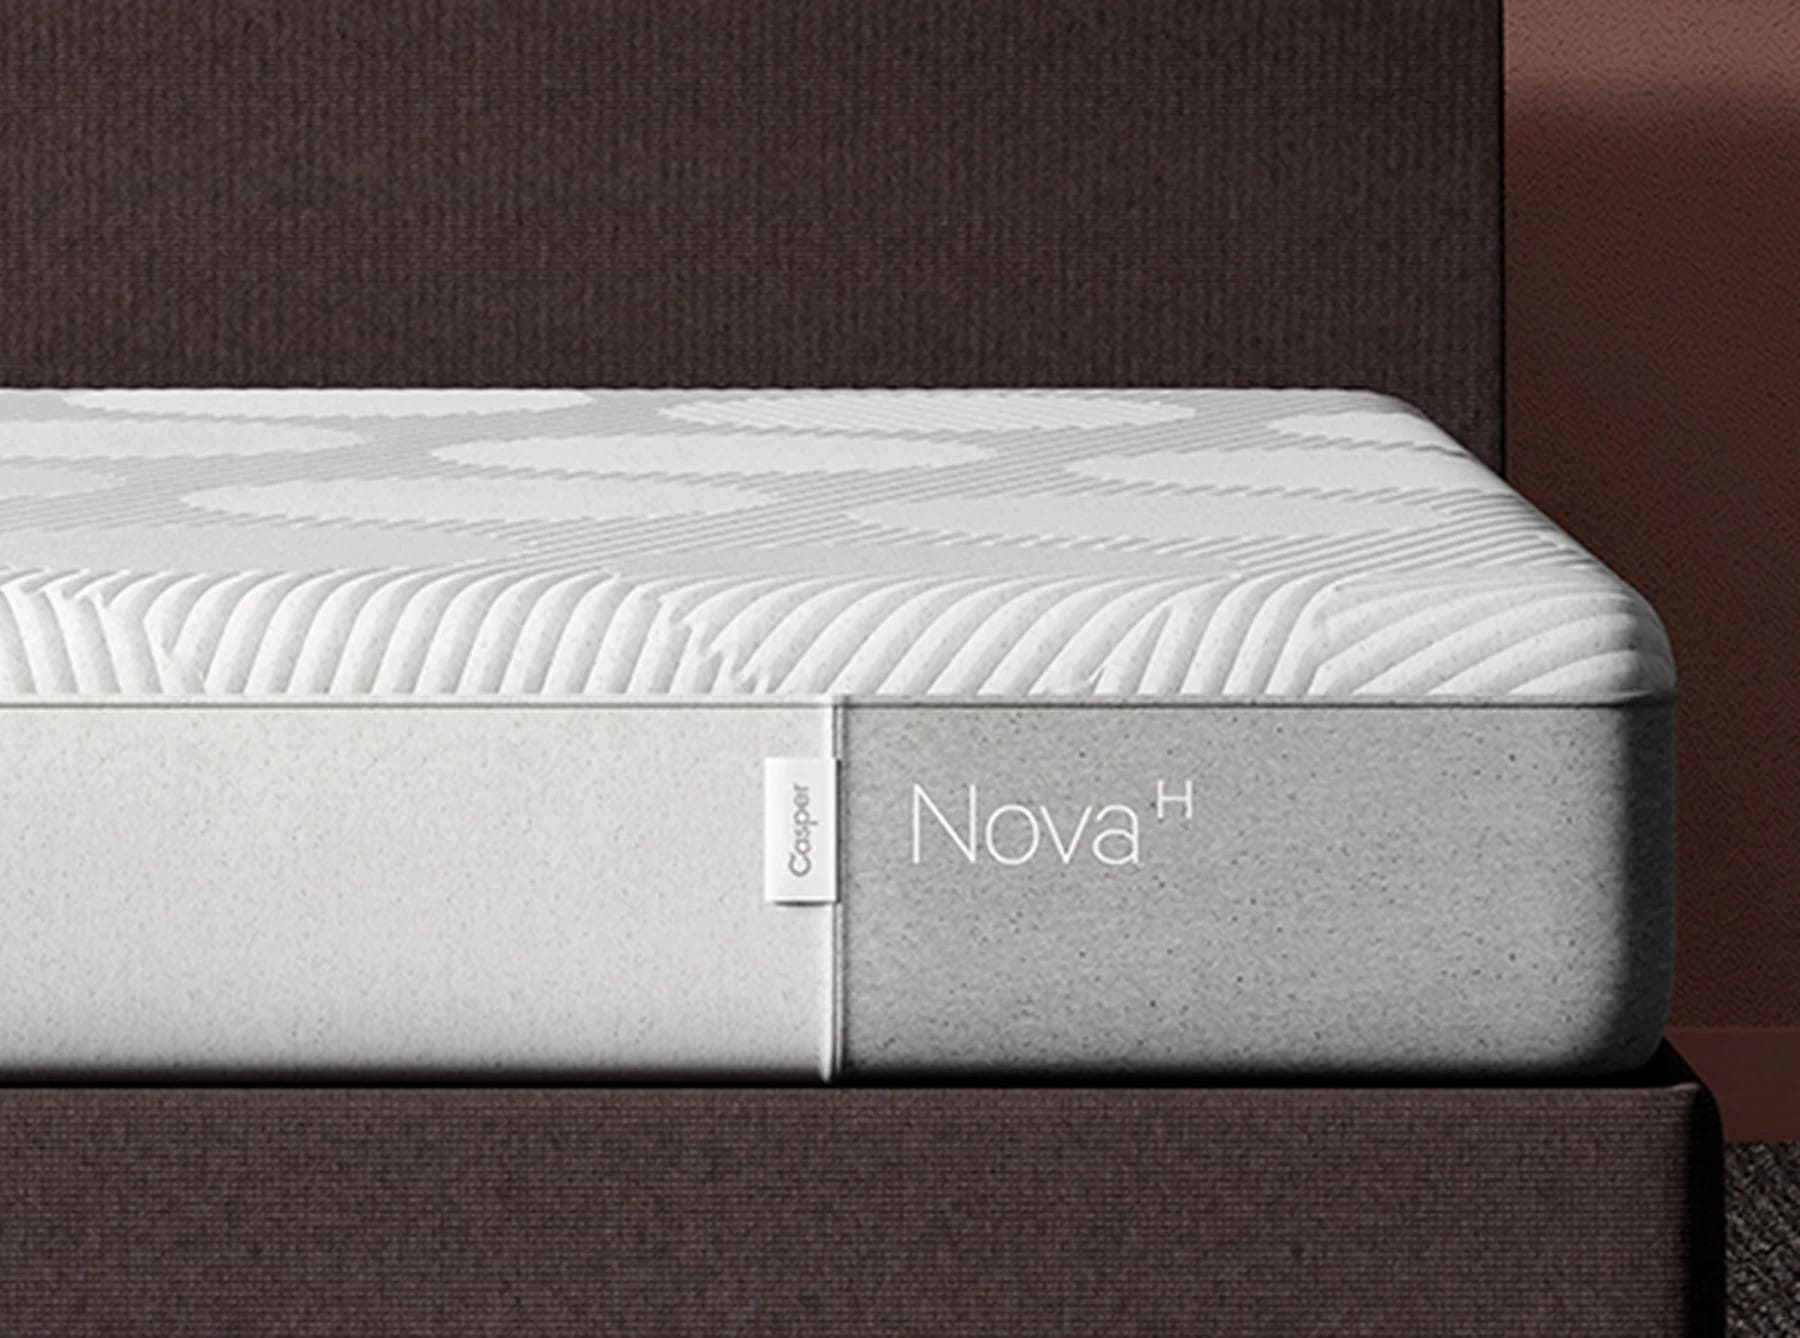 nova mattress compared to other casper reivew